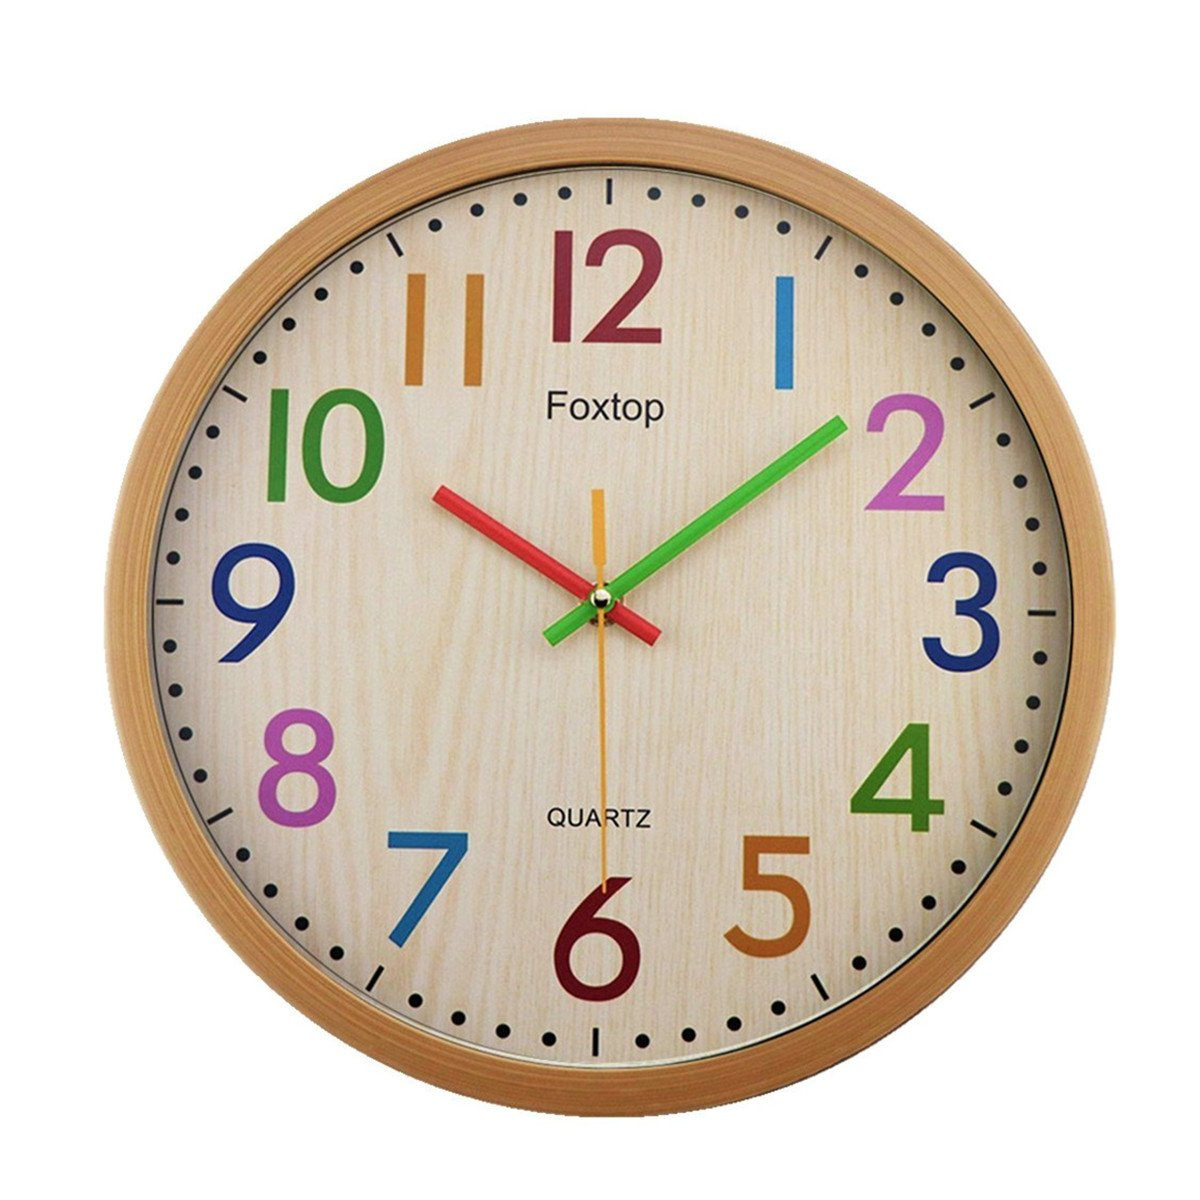 Foxtop Large Silent Non-ticking Decorative Colorful Kids Wall Clock Battery Operated for Living Room Bedroom School Classroom Child Gifts 12.5 Inch - Easy To Read FT-13I201531A